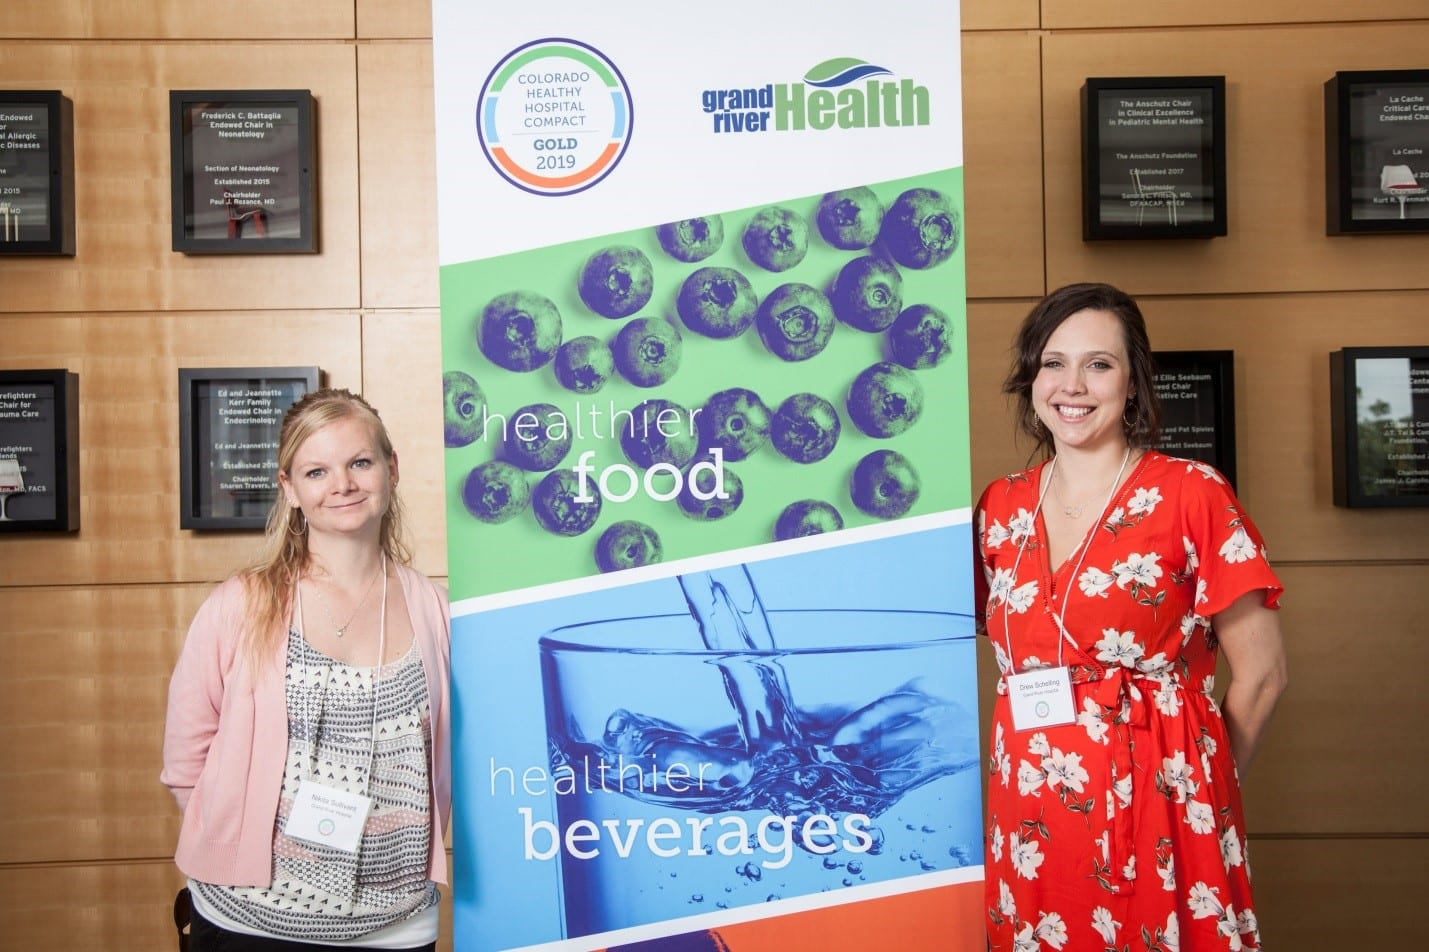 Grand River Health Achieves Gold Level Healthy Hospital Compact